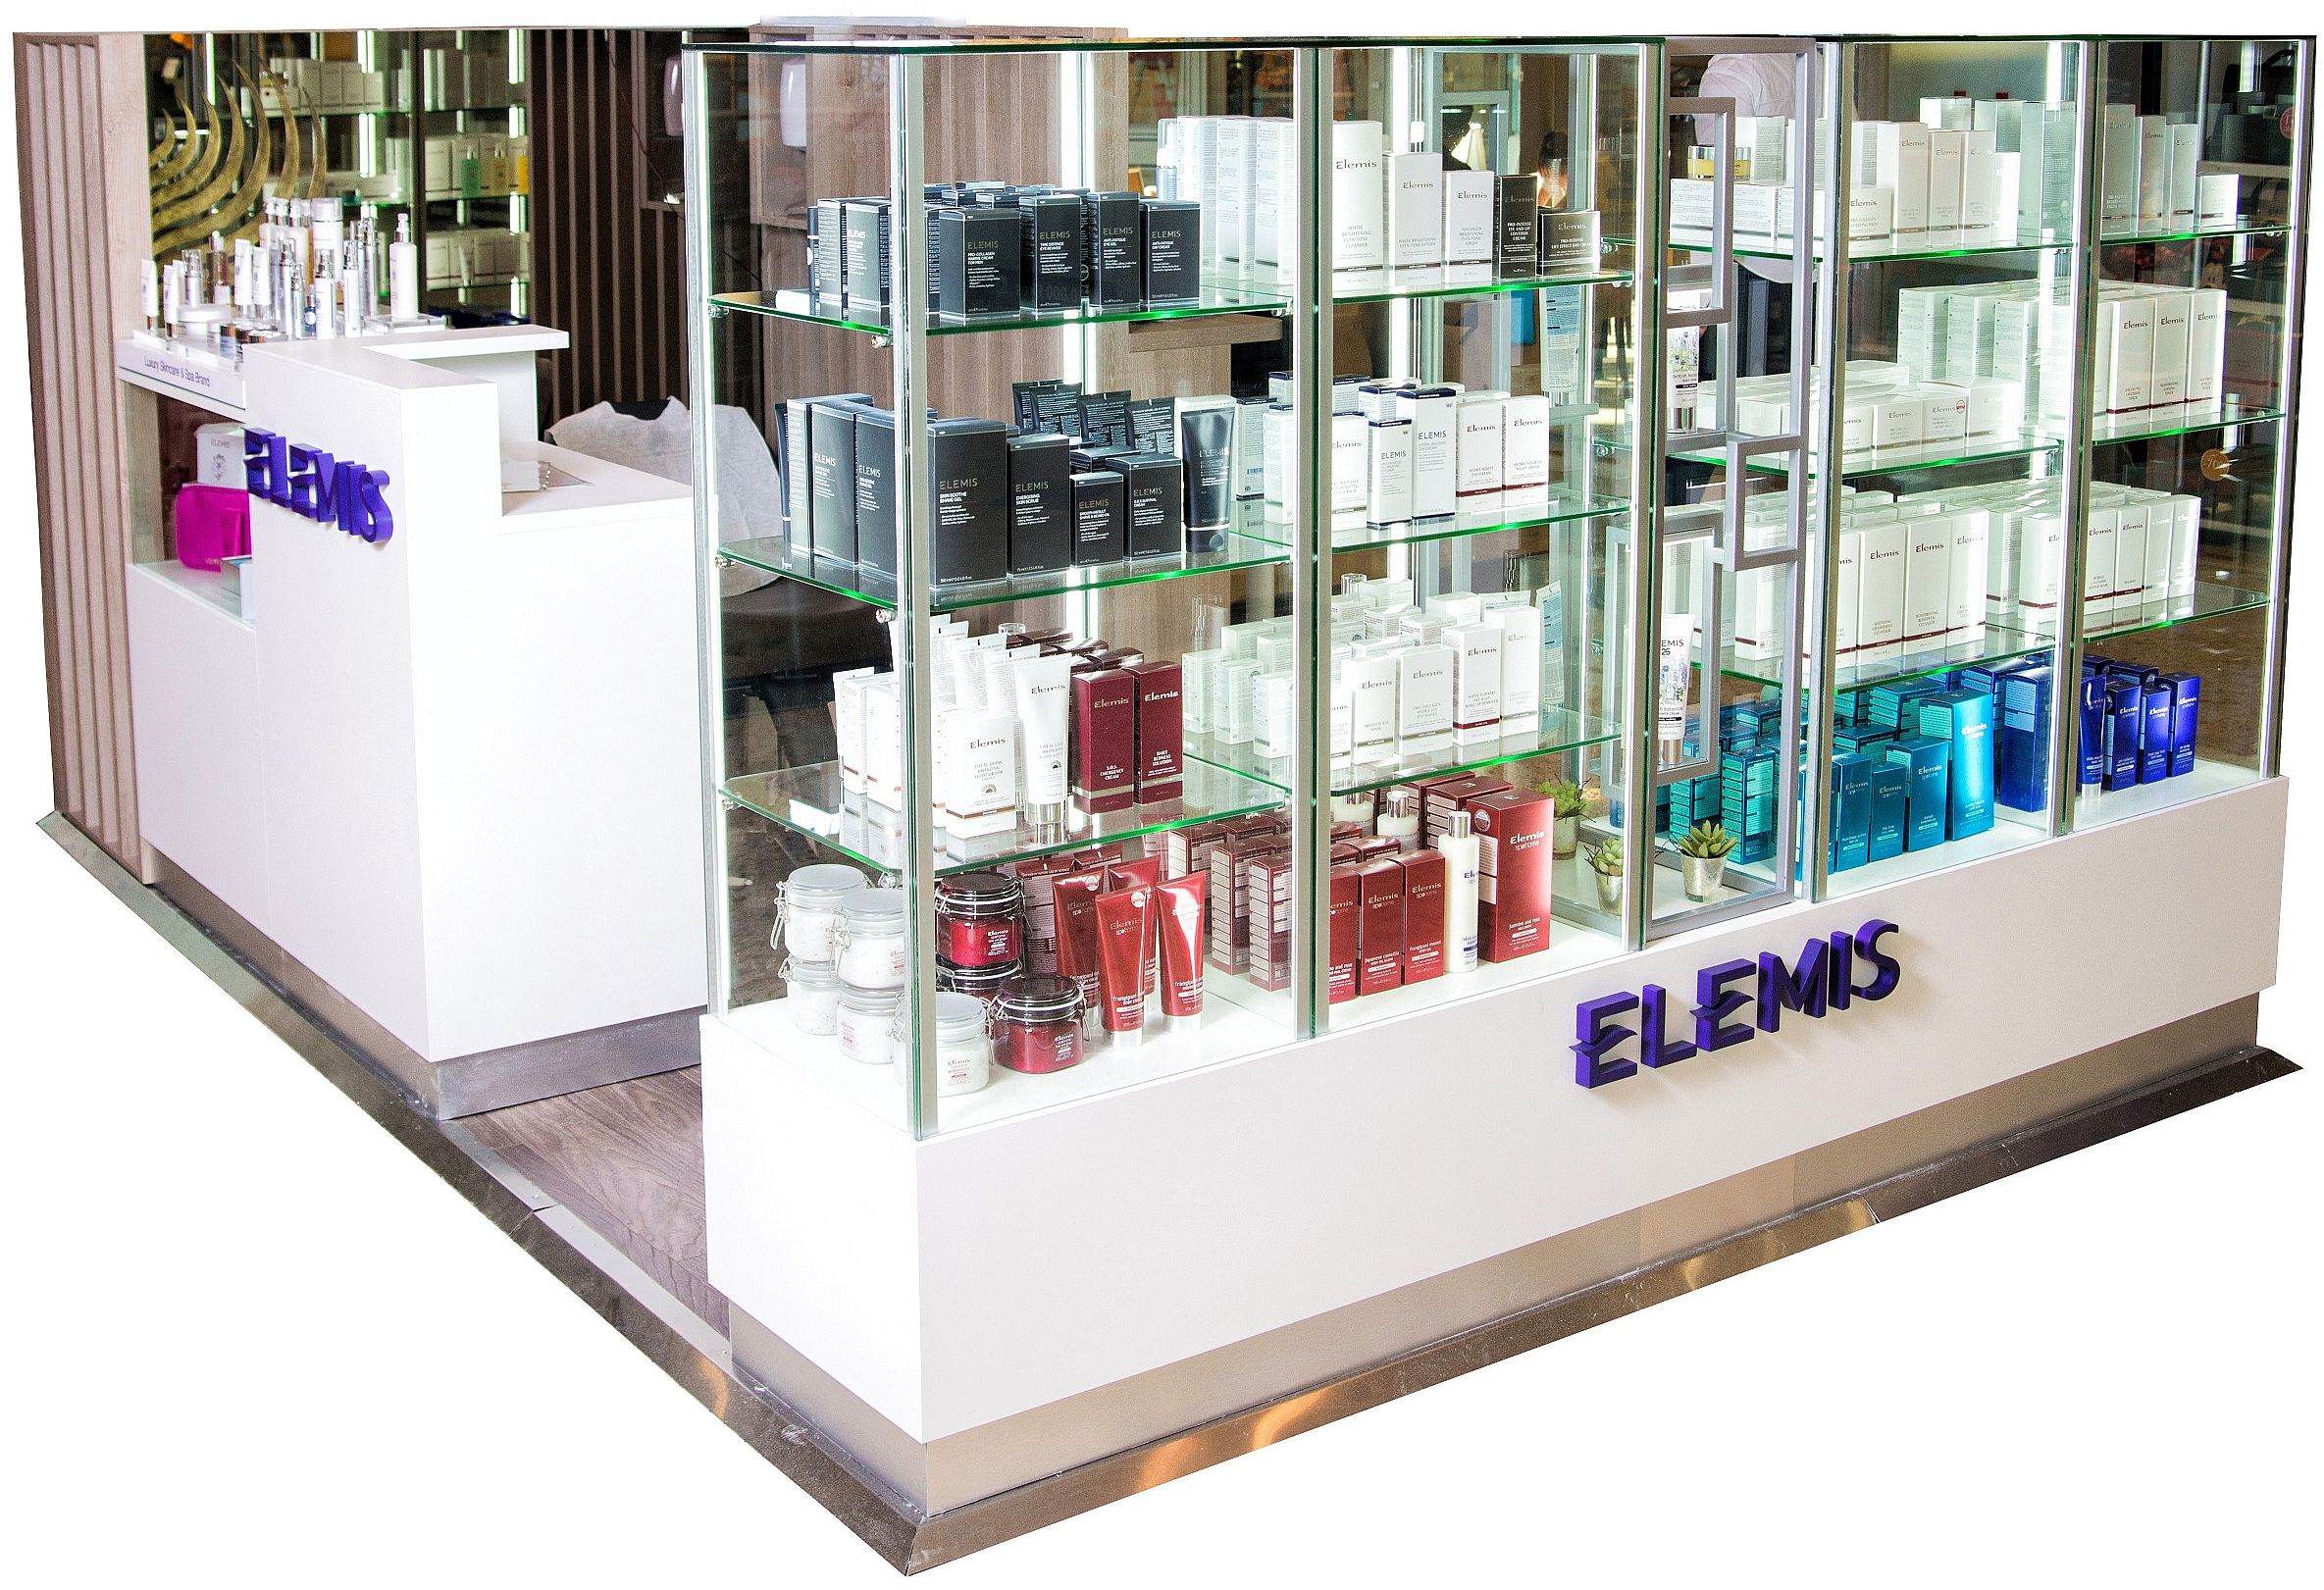 pop up spa elemis (3)